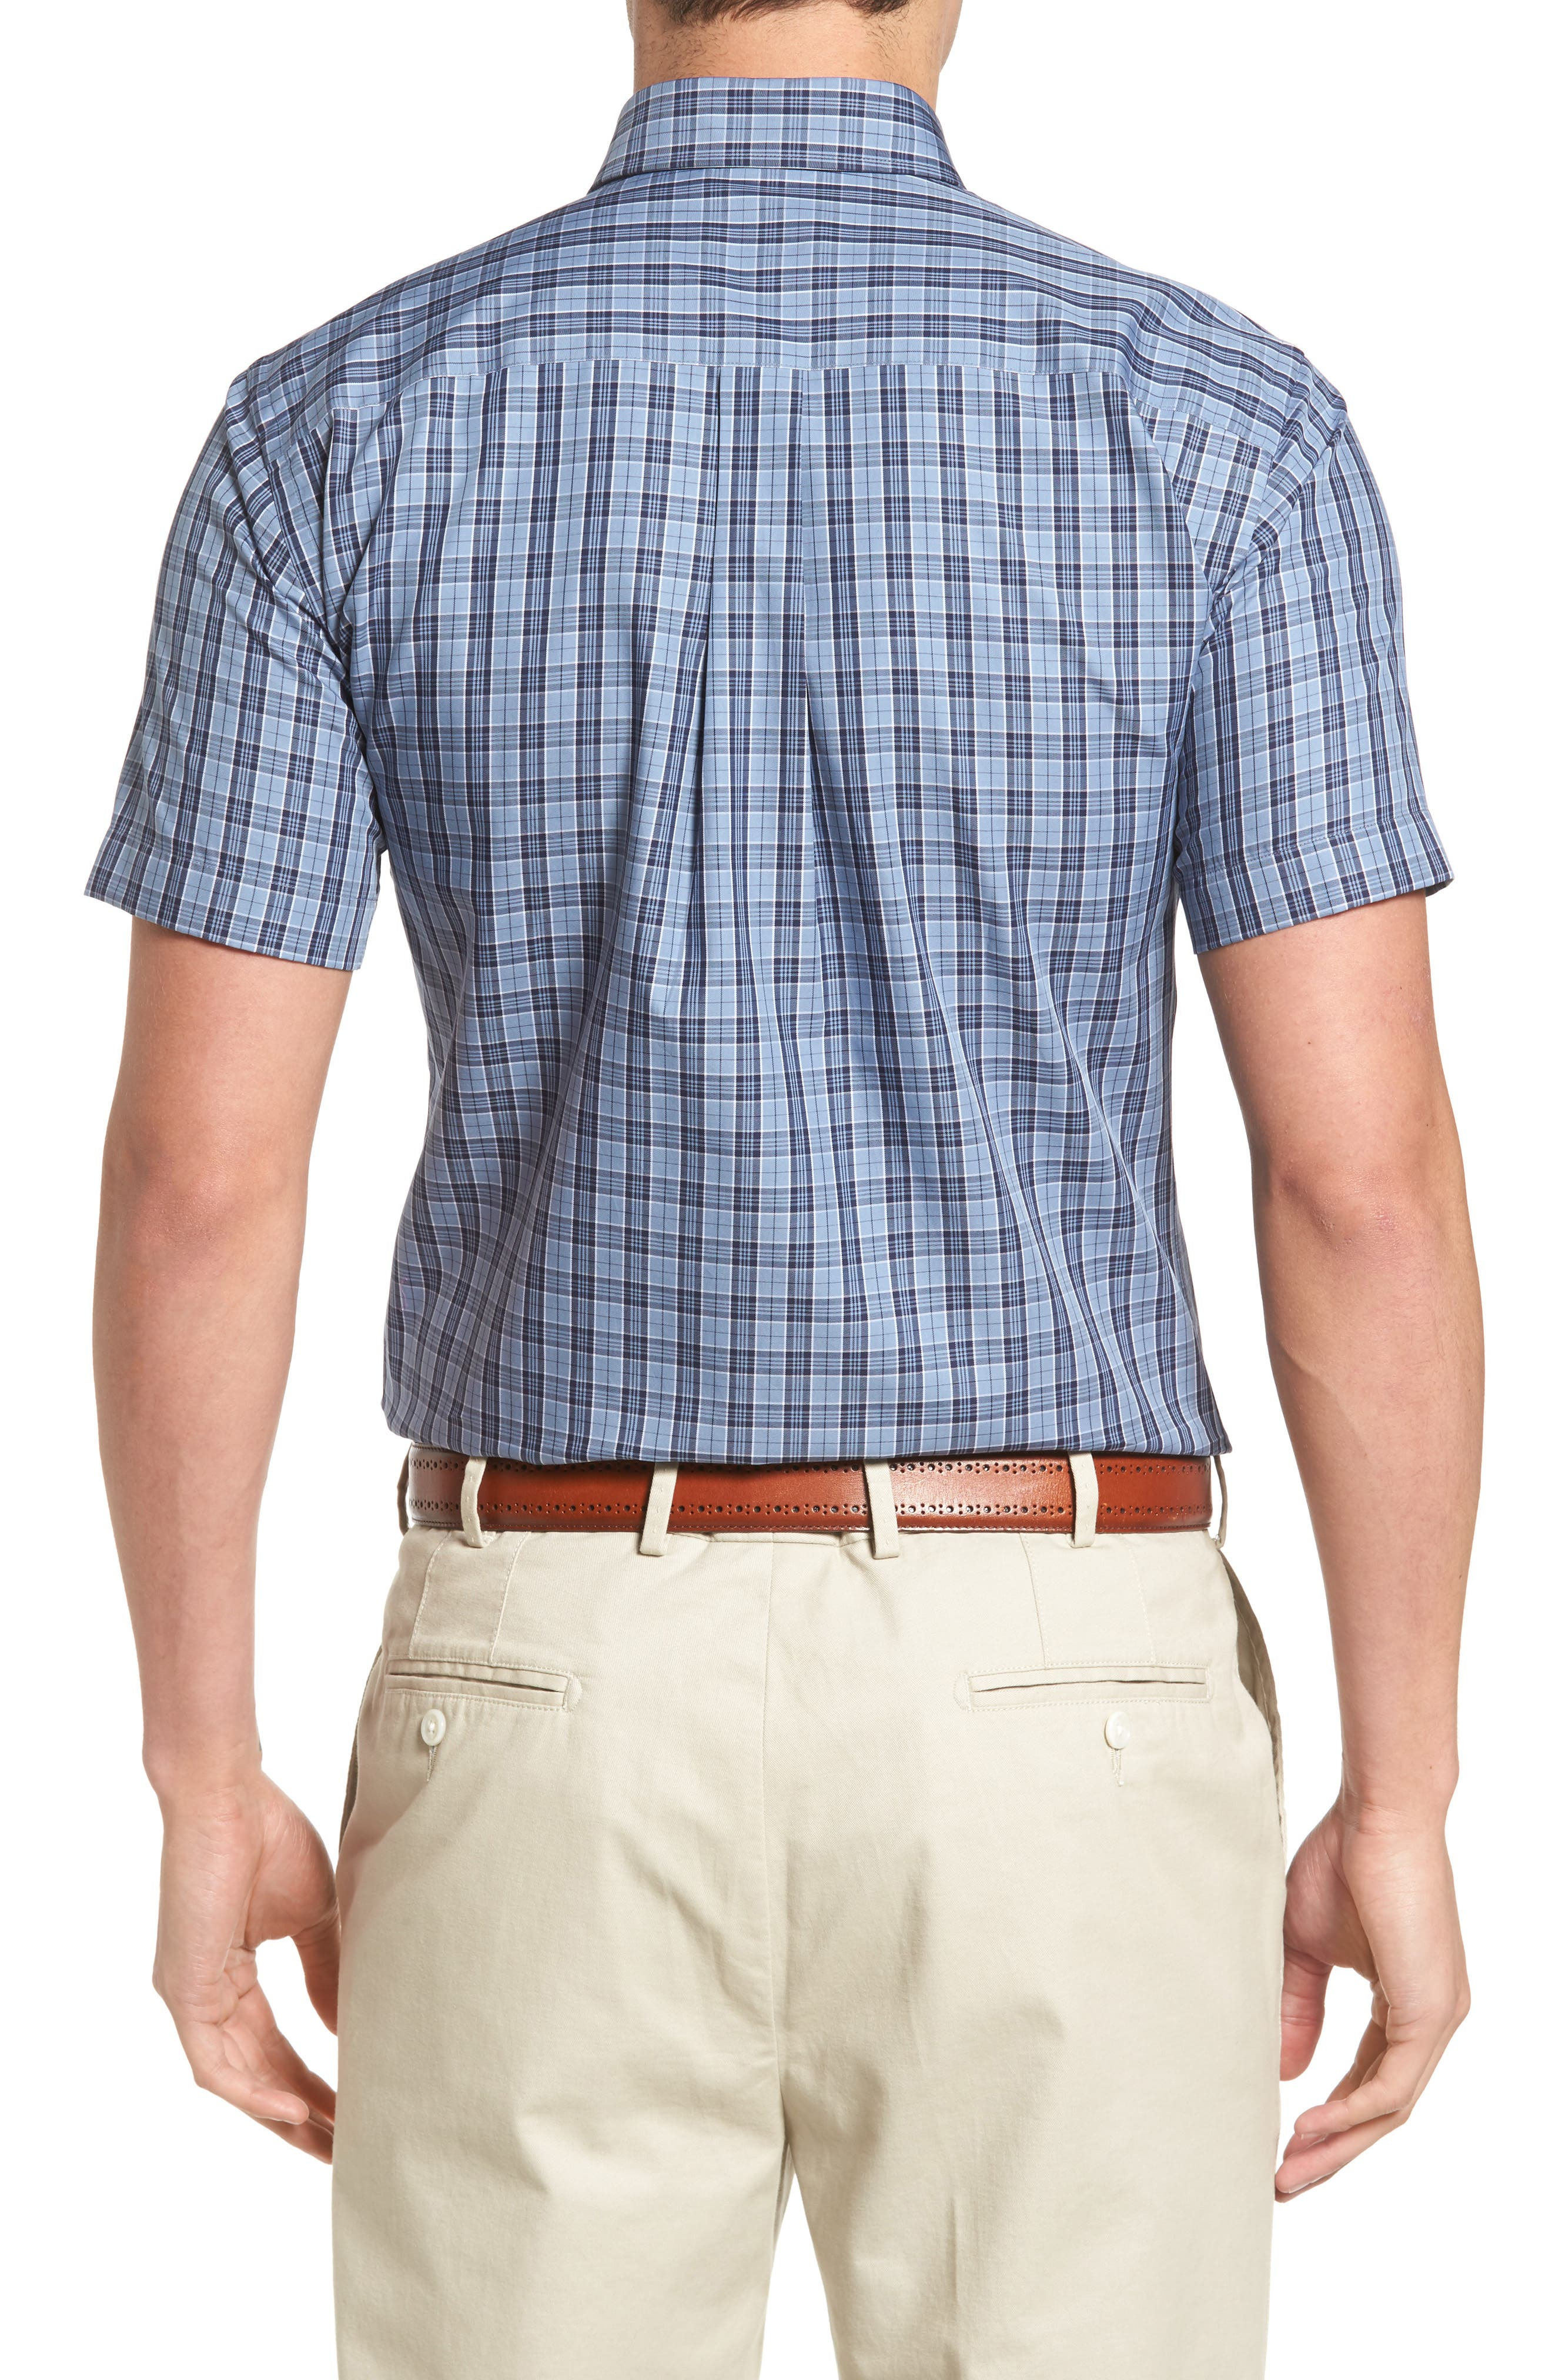 Alternate Image 2  - Peter Millar Regular Fit Short Sleeve Stormy Plaid Sport Shirt